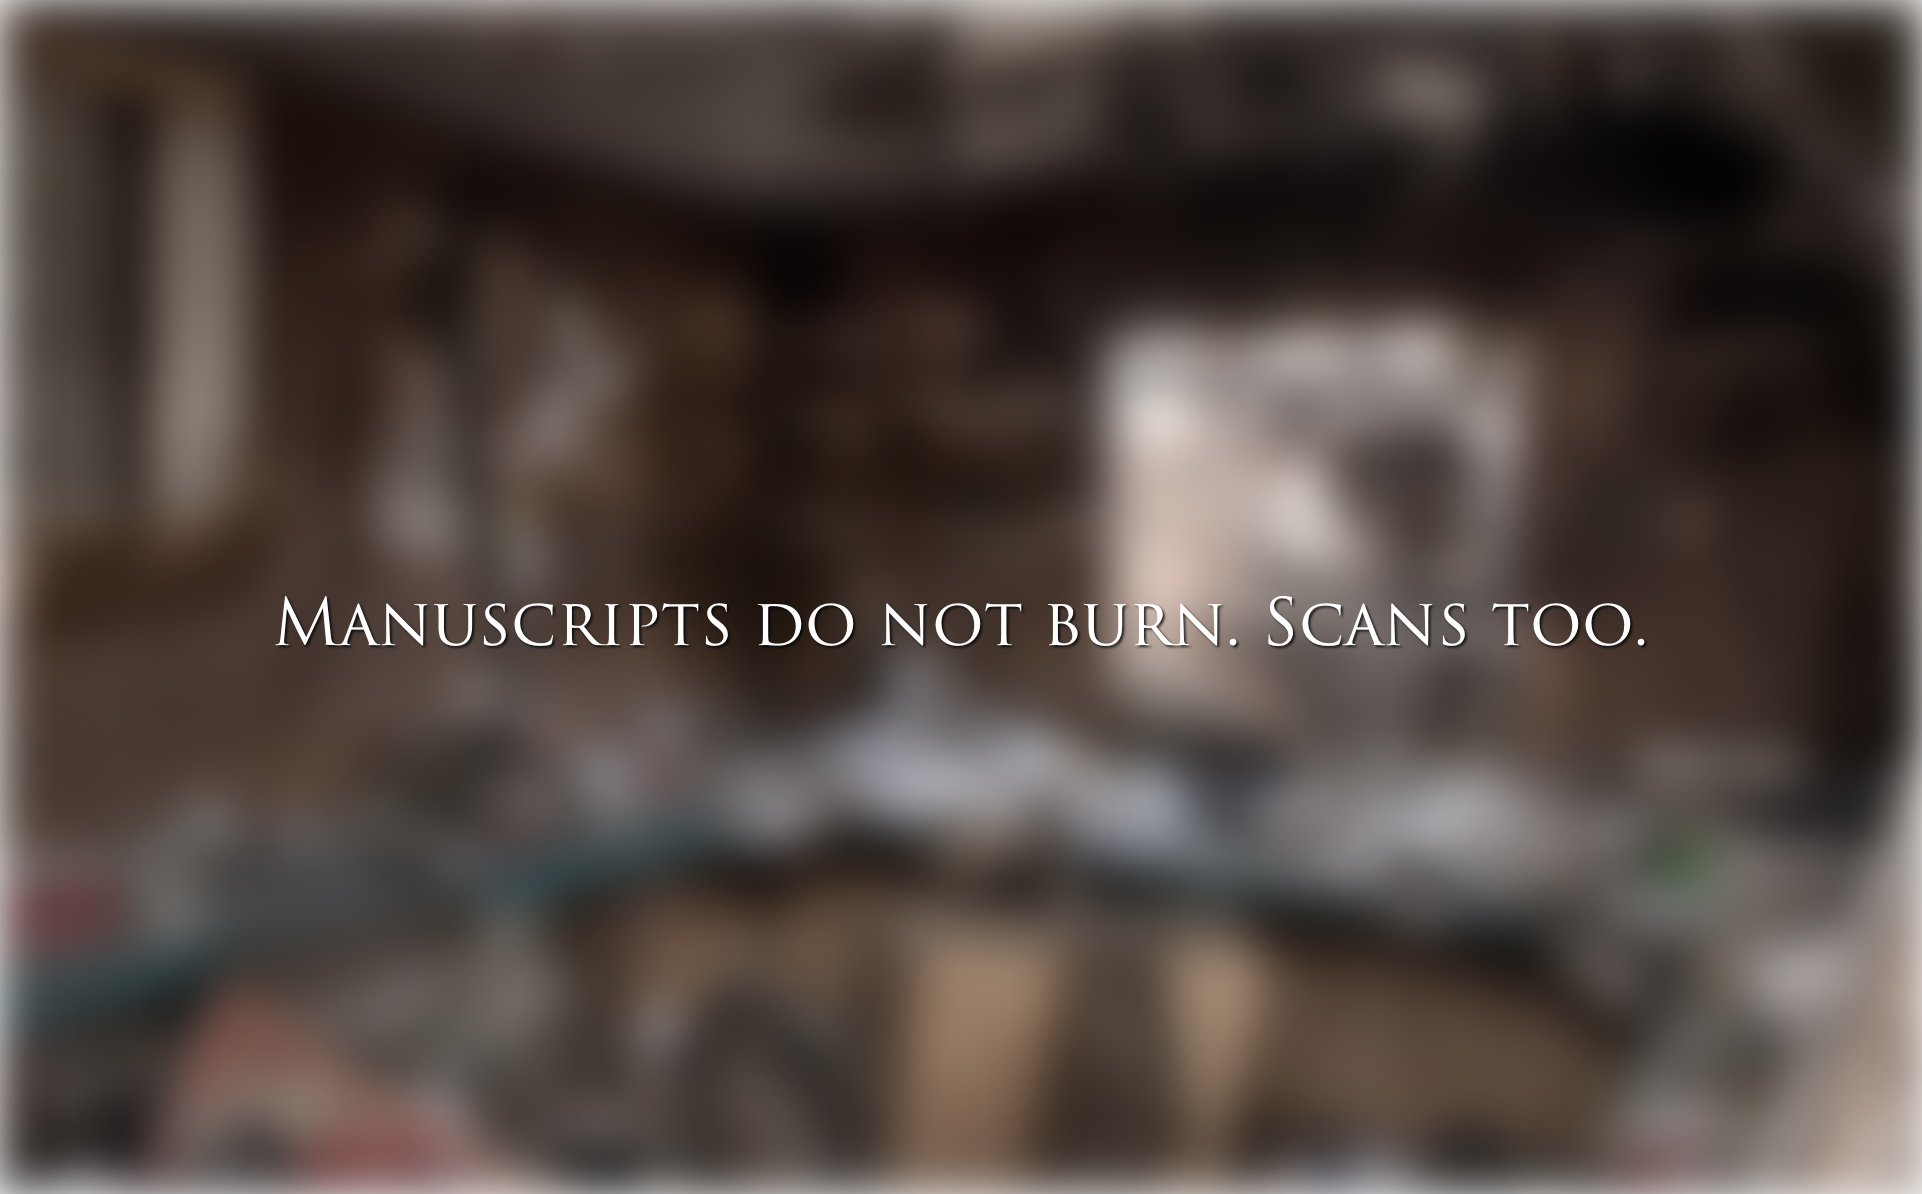 Manuscripts do not burn. Scans too